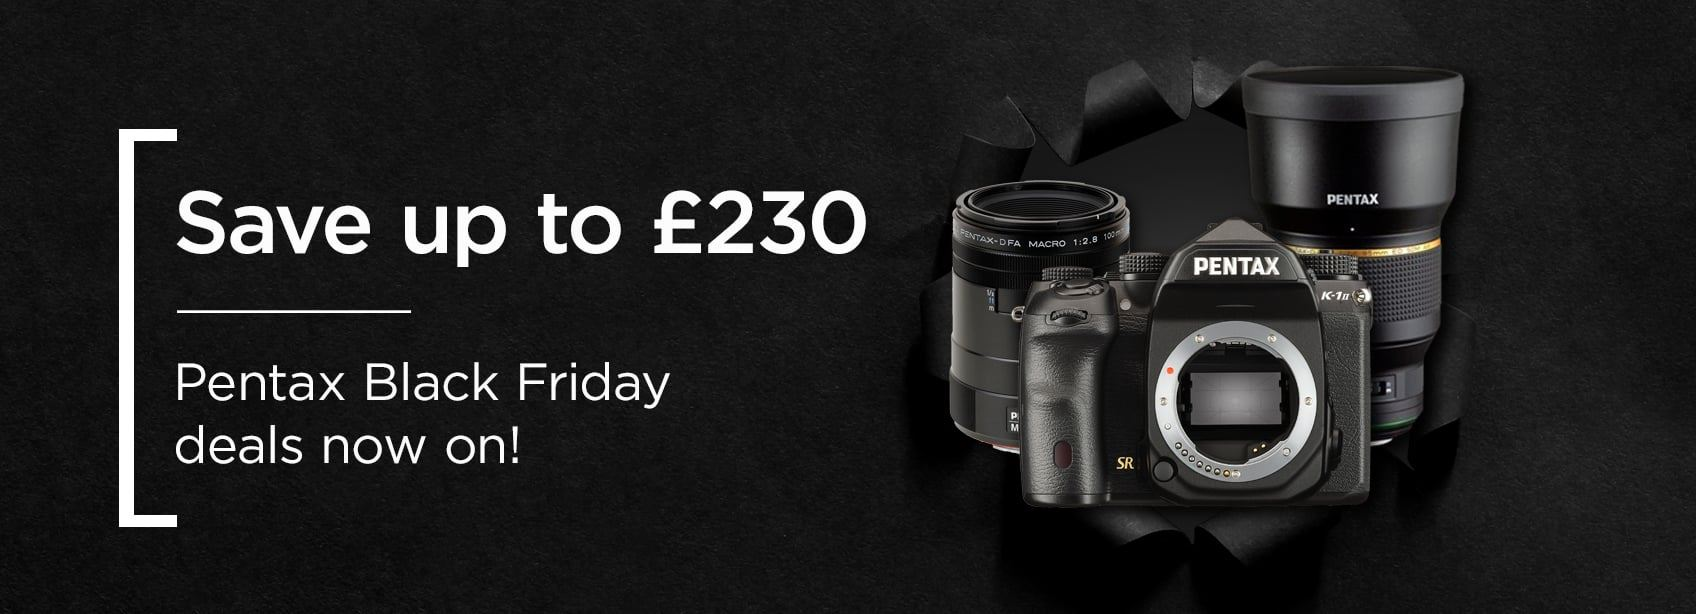 Save up to £230 - Pentax Black Friday deals now on!